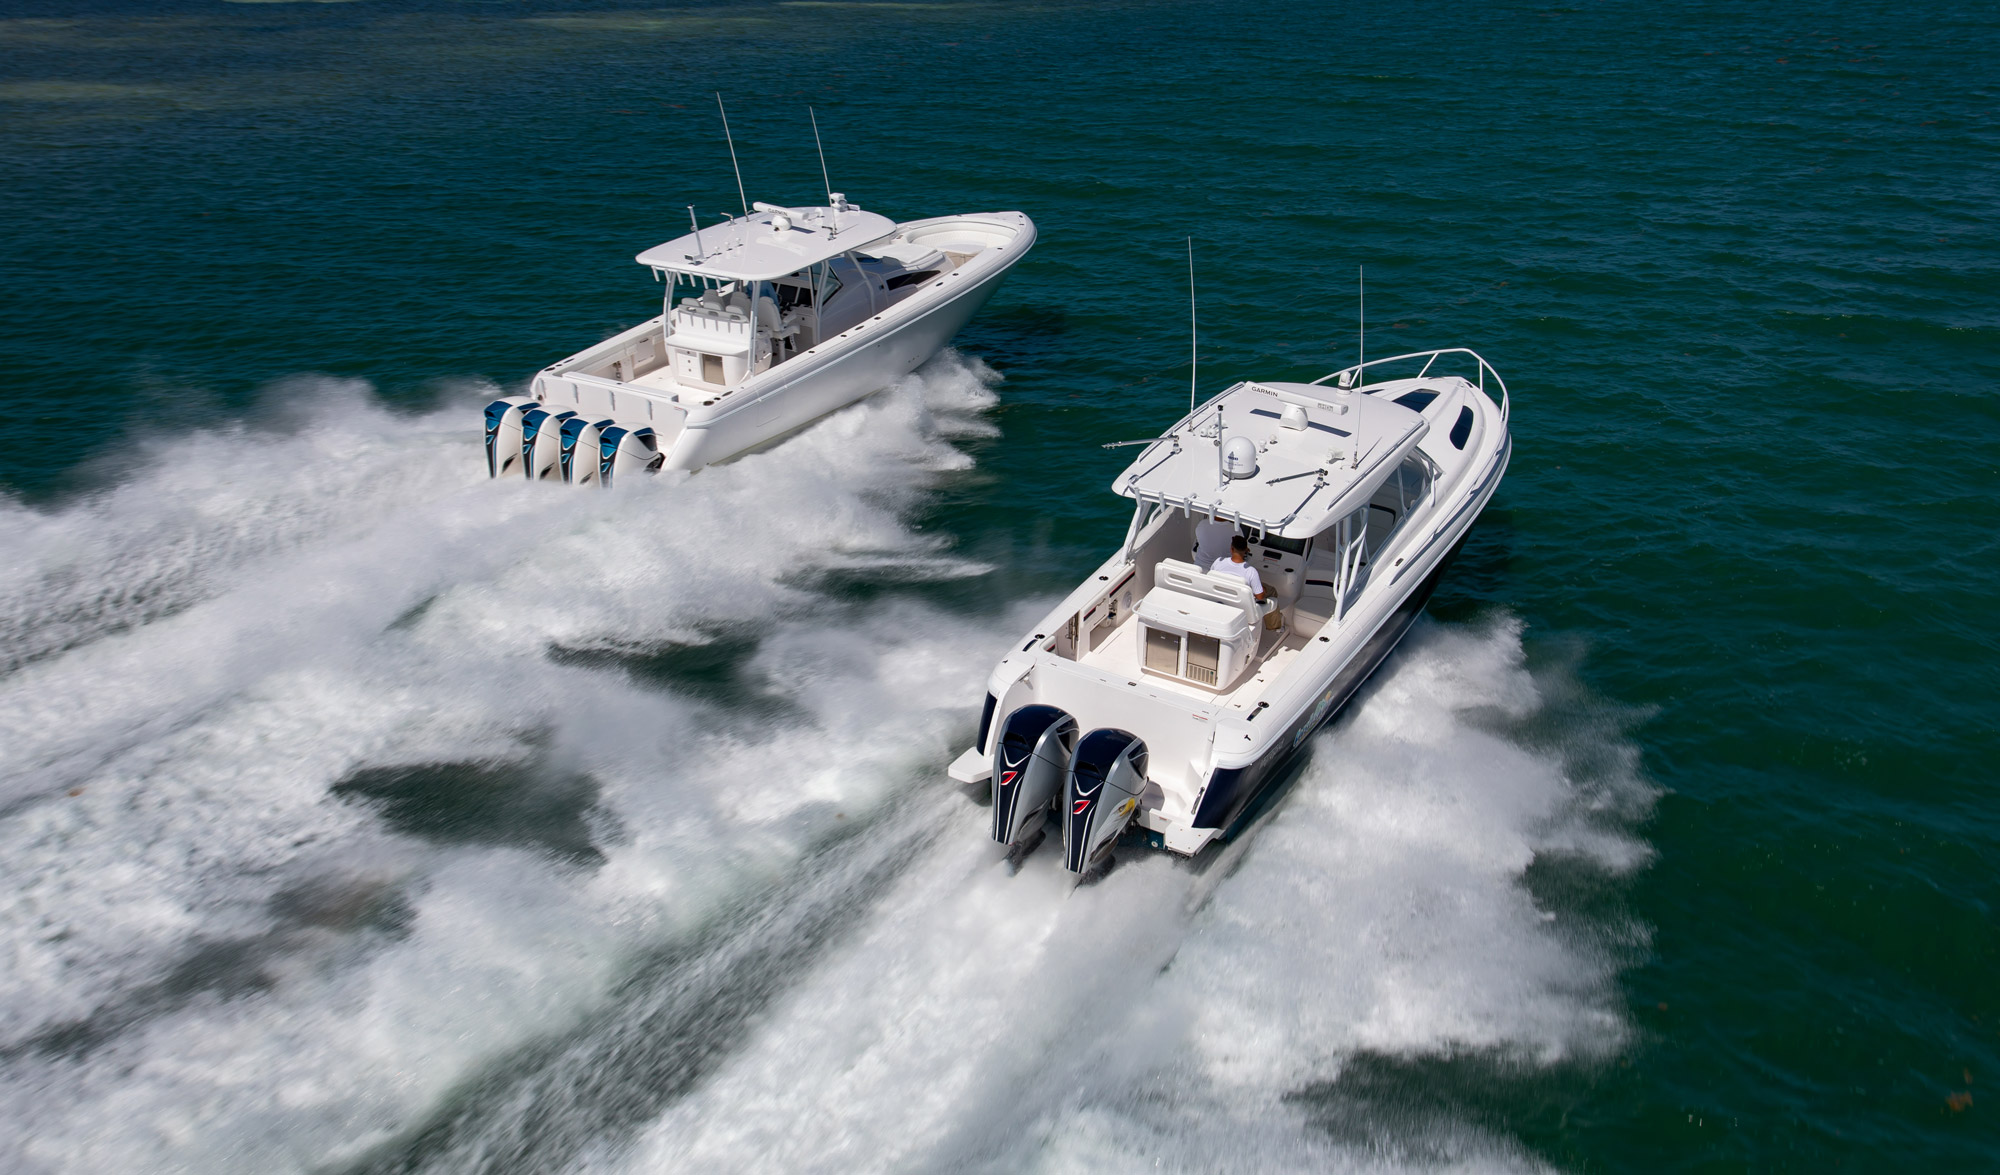 Two boats side by side with seven marine CE Mark Certification motors